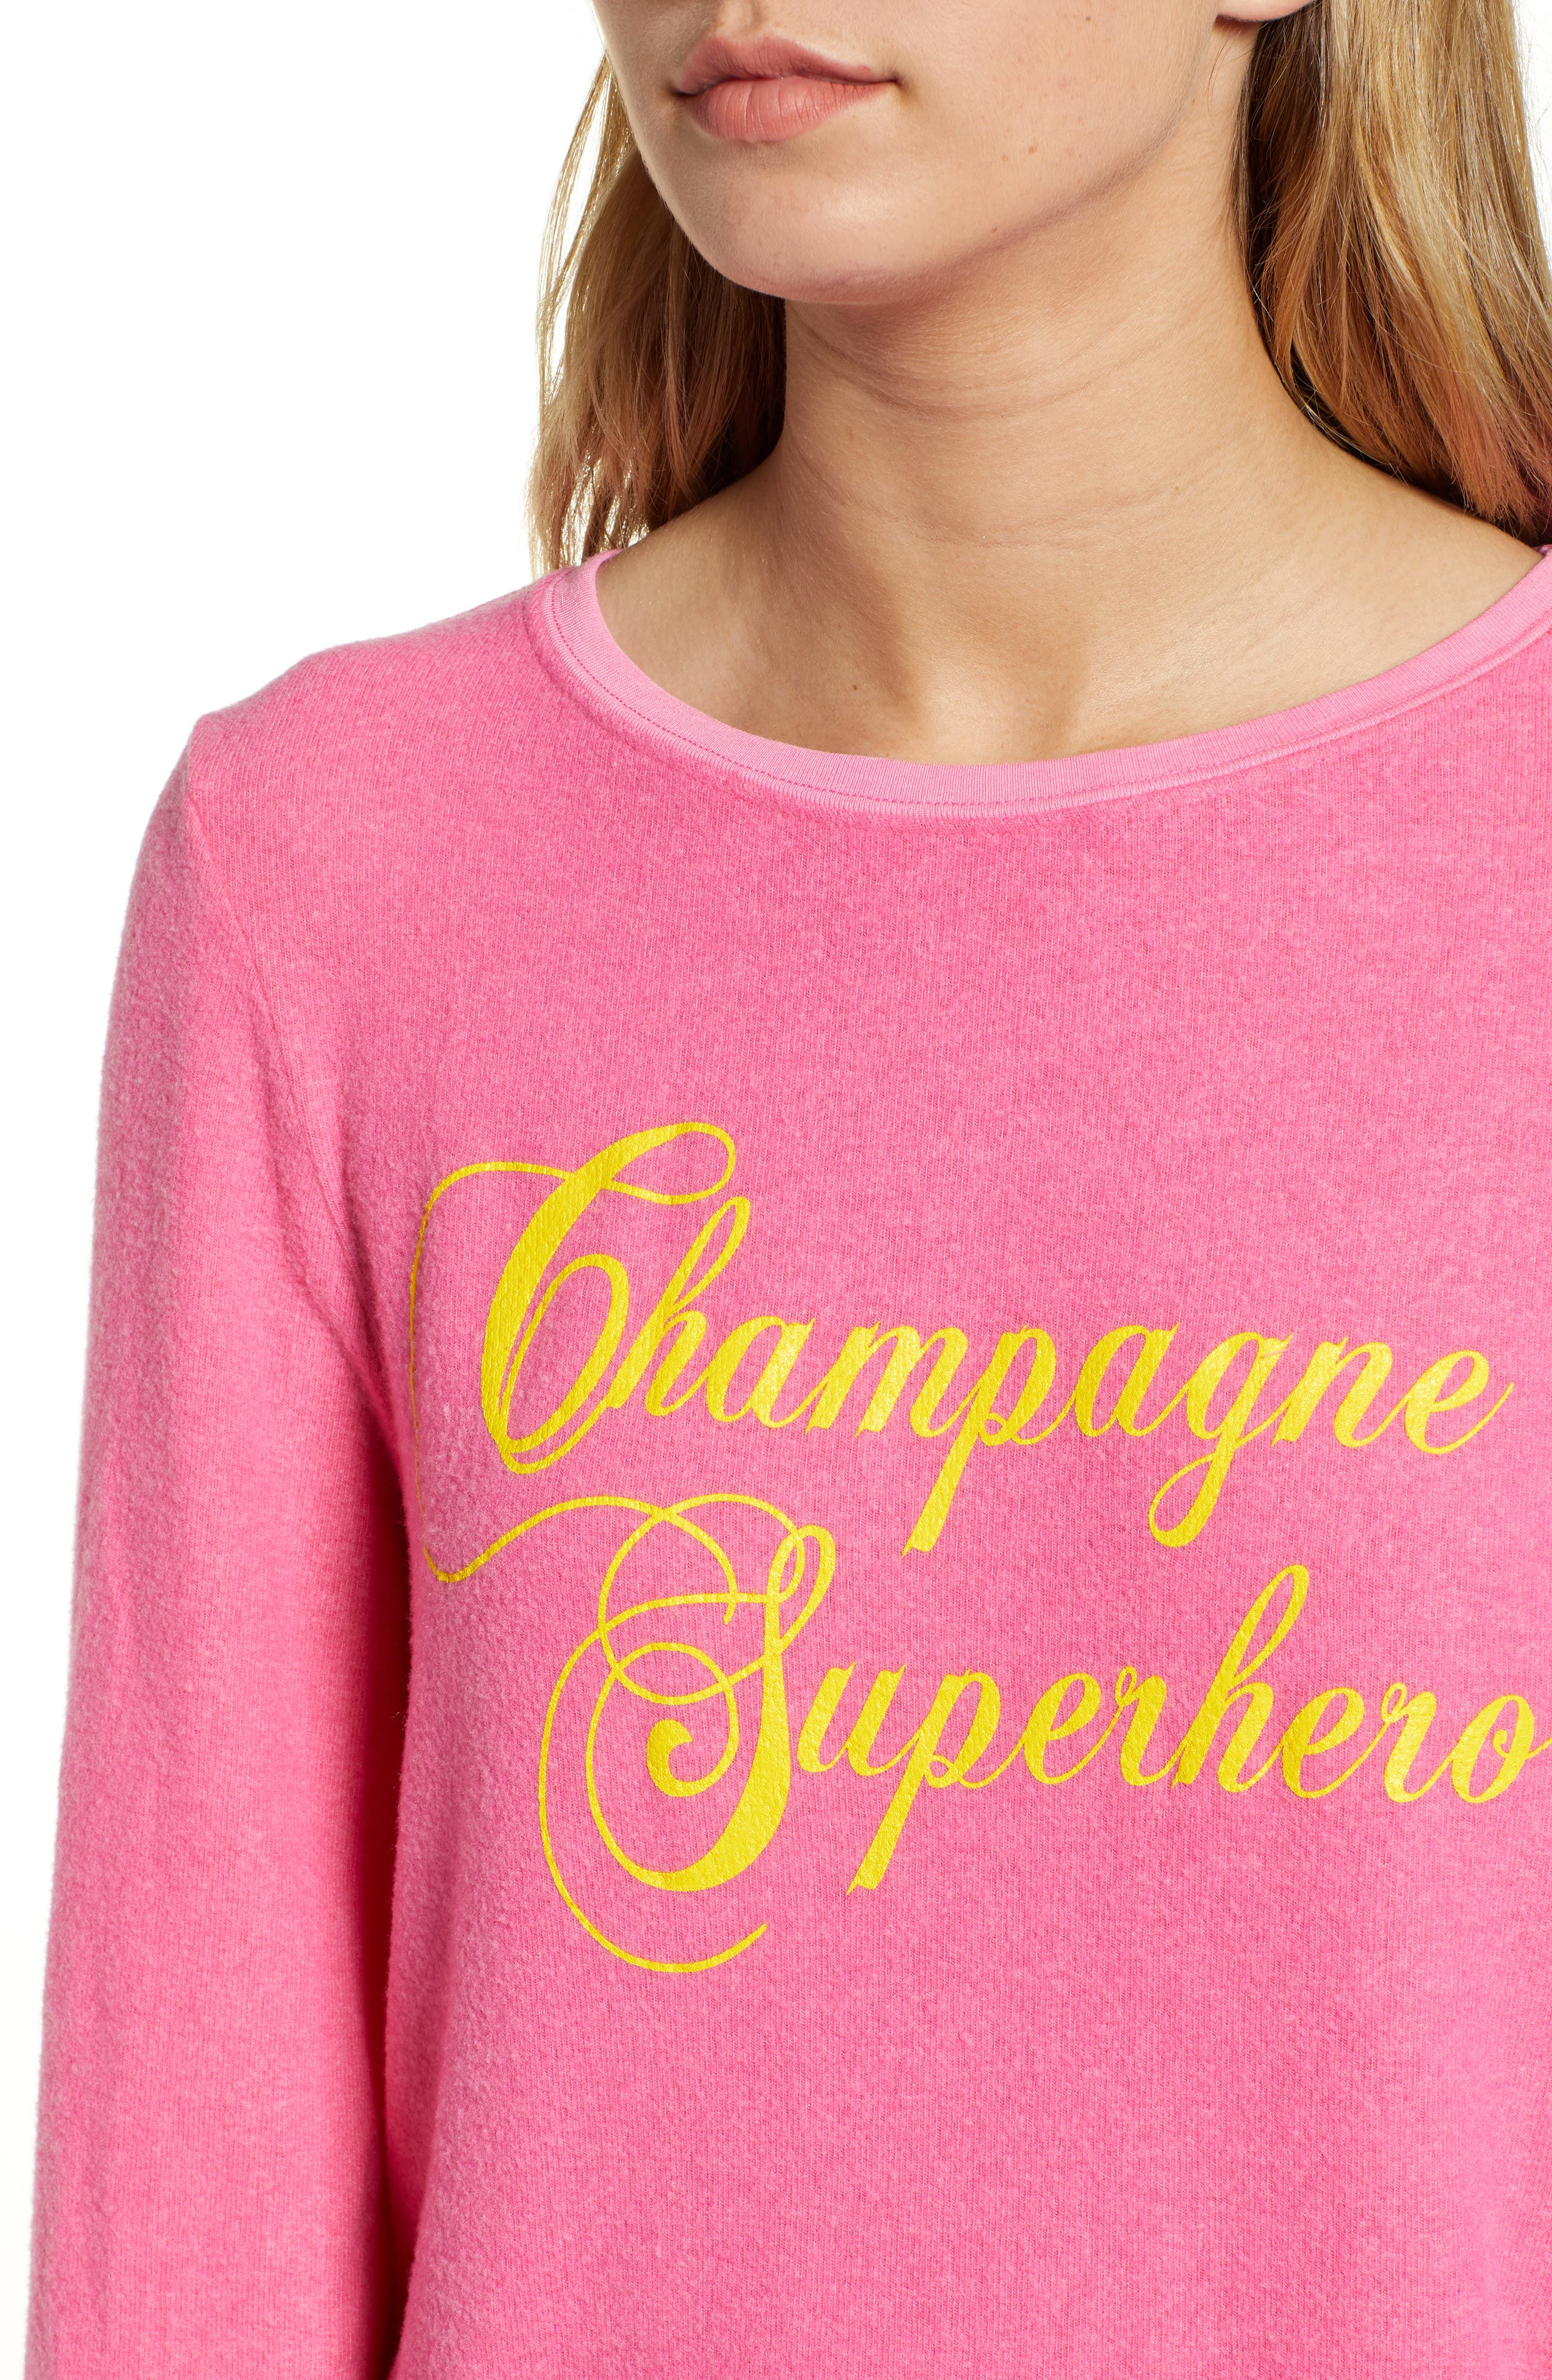 Baggy Beach Jumper - Champagne Superhero Pullover,                             Alternate thumbnail 4, color,                             NEON MAGENTA